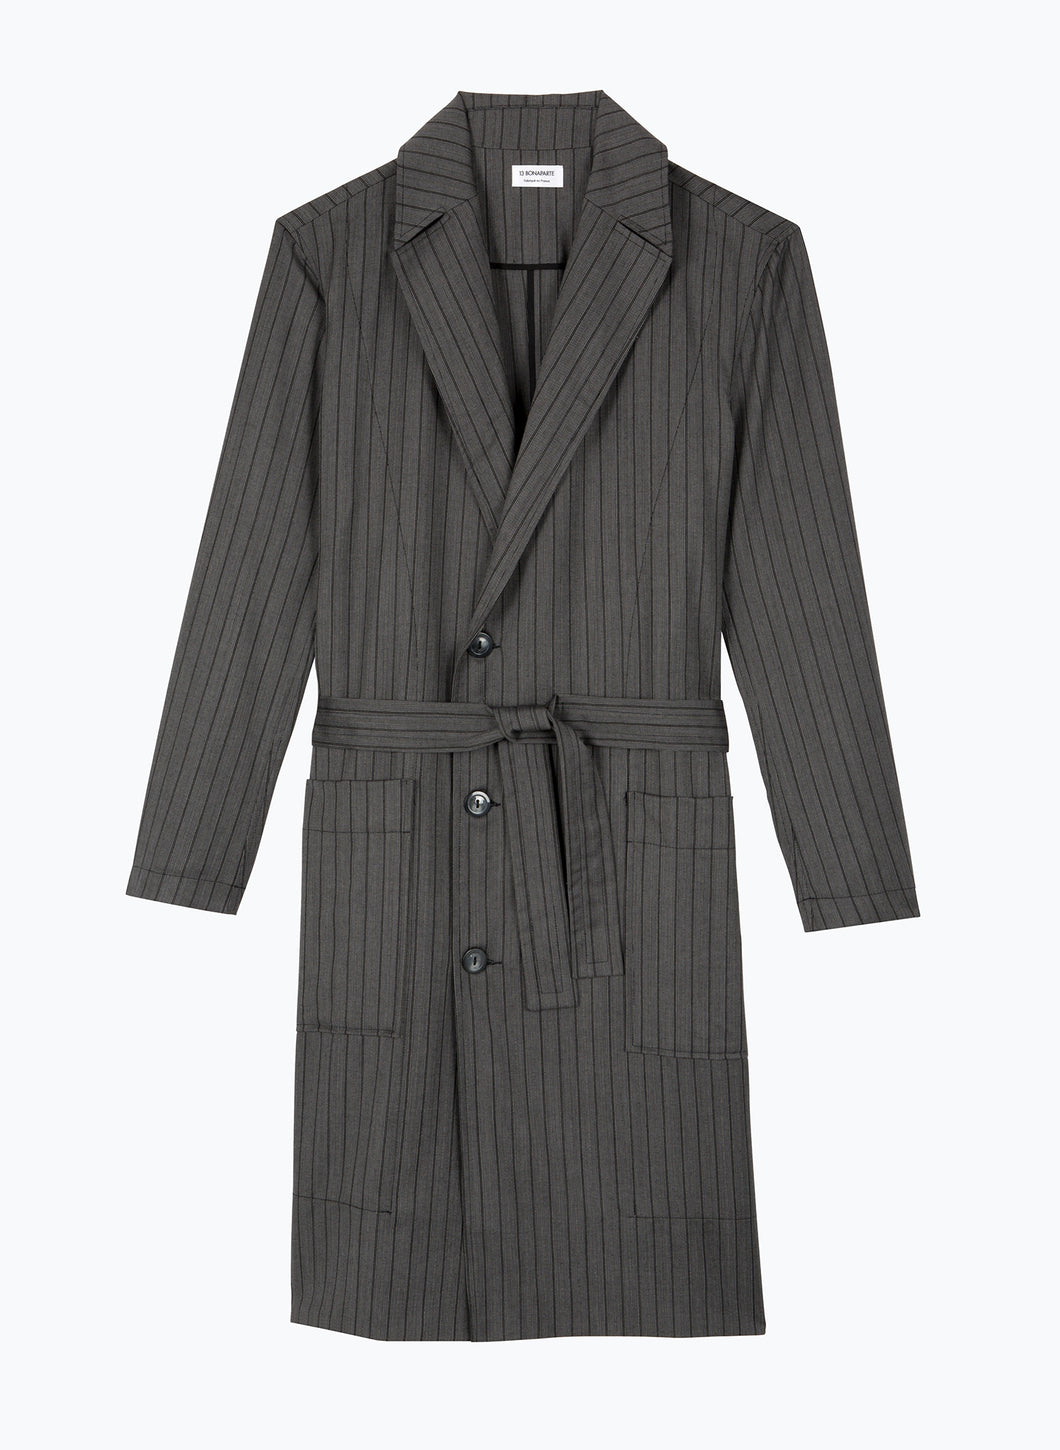 Bathrobe-Style Overcoat in Grey Striped Cool Wool